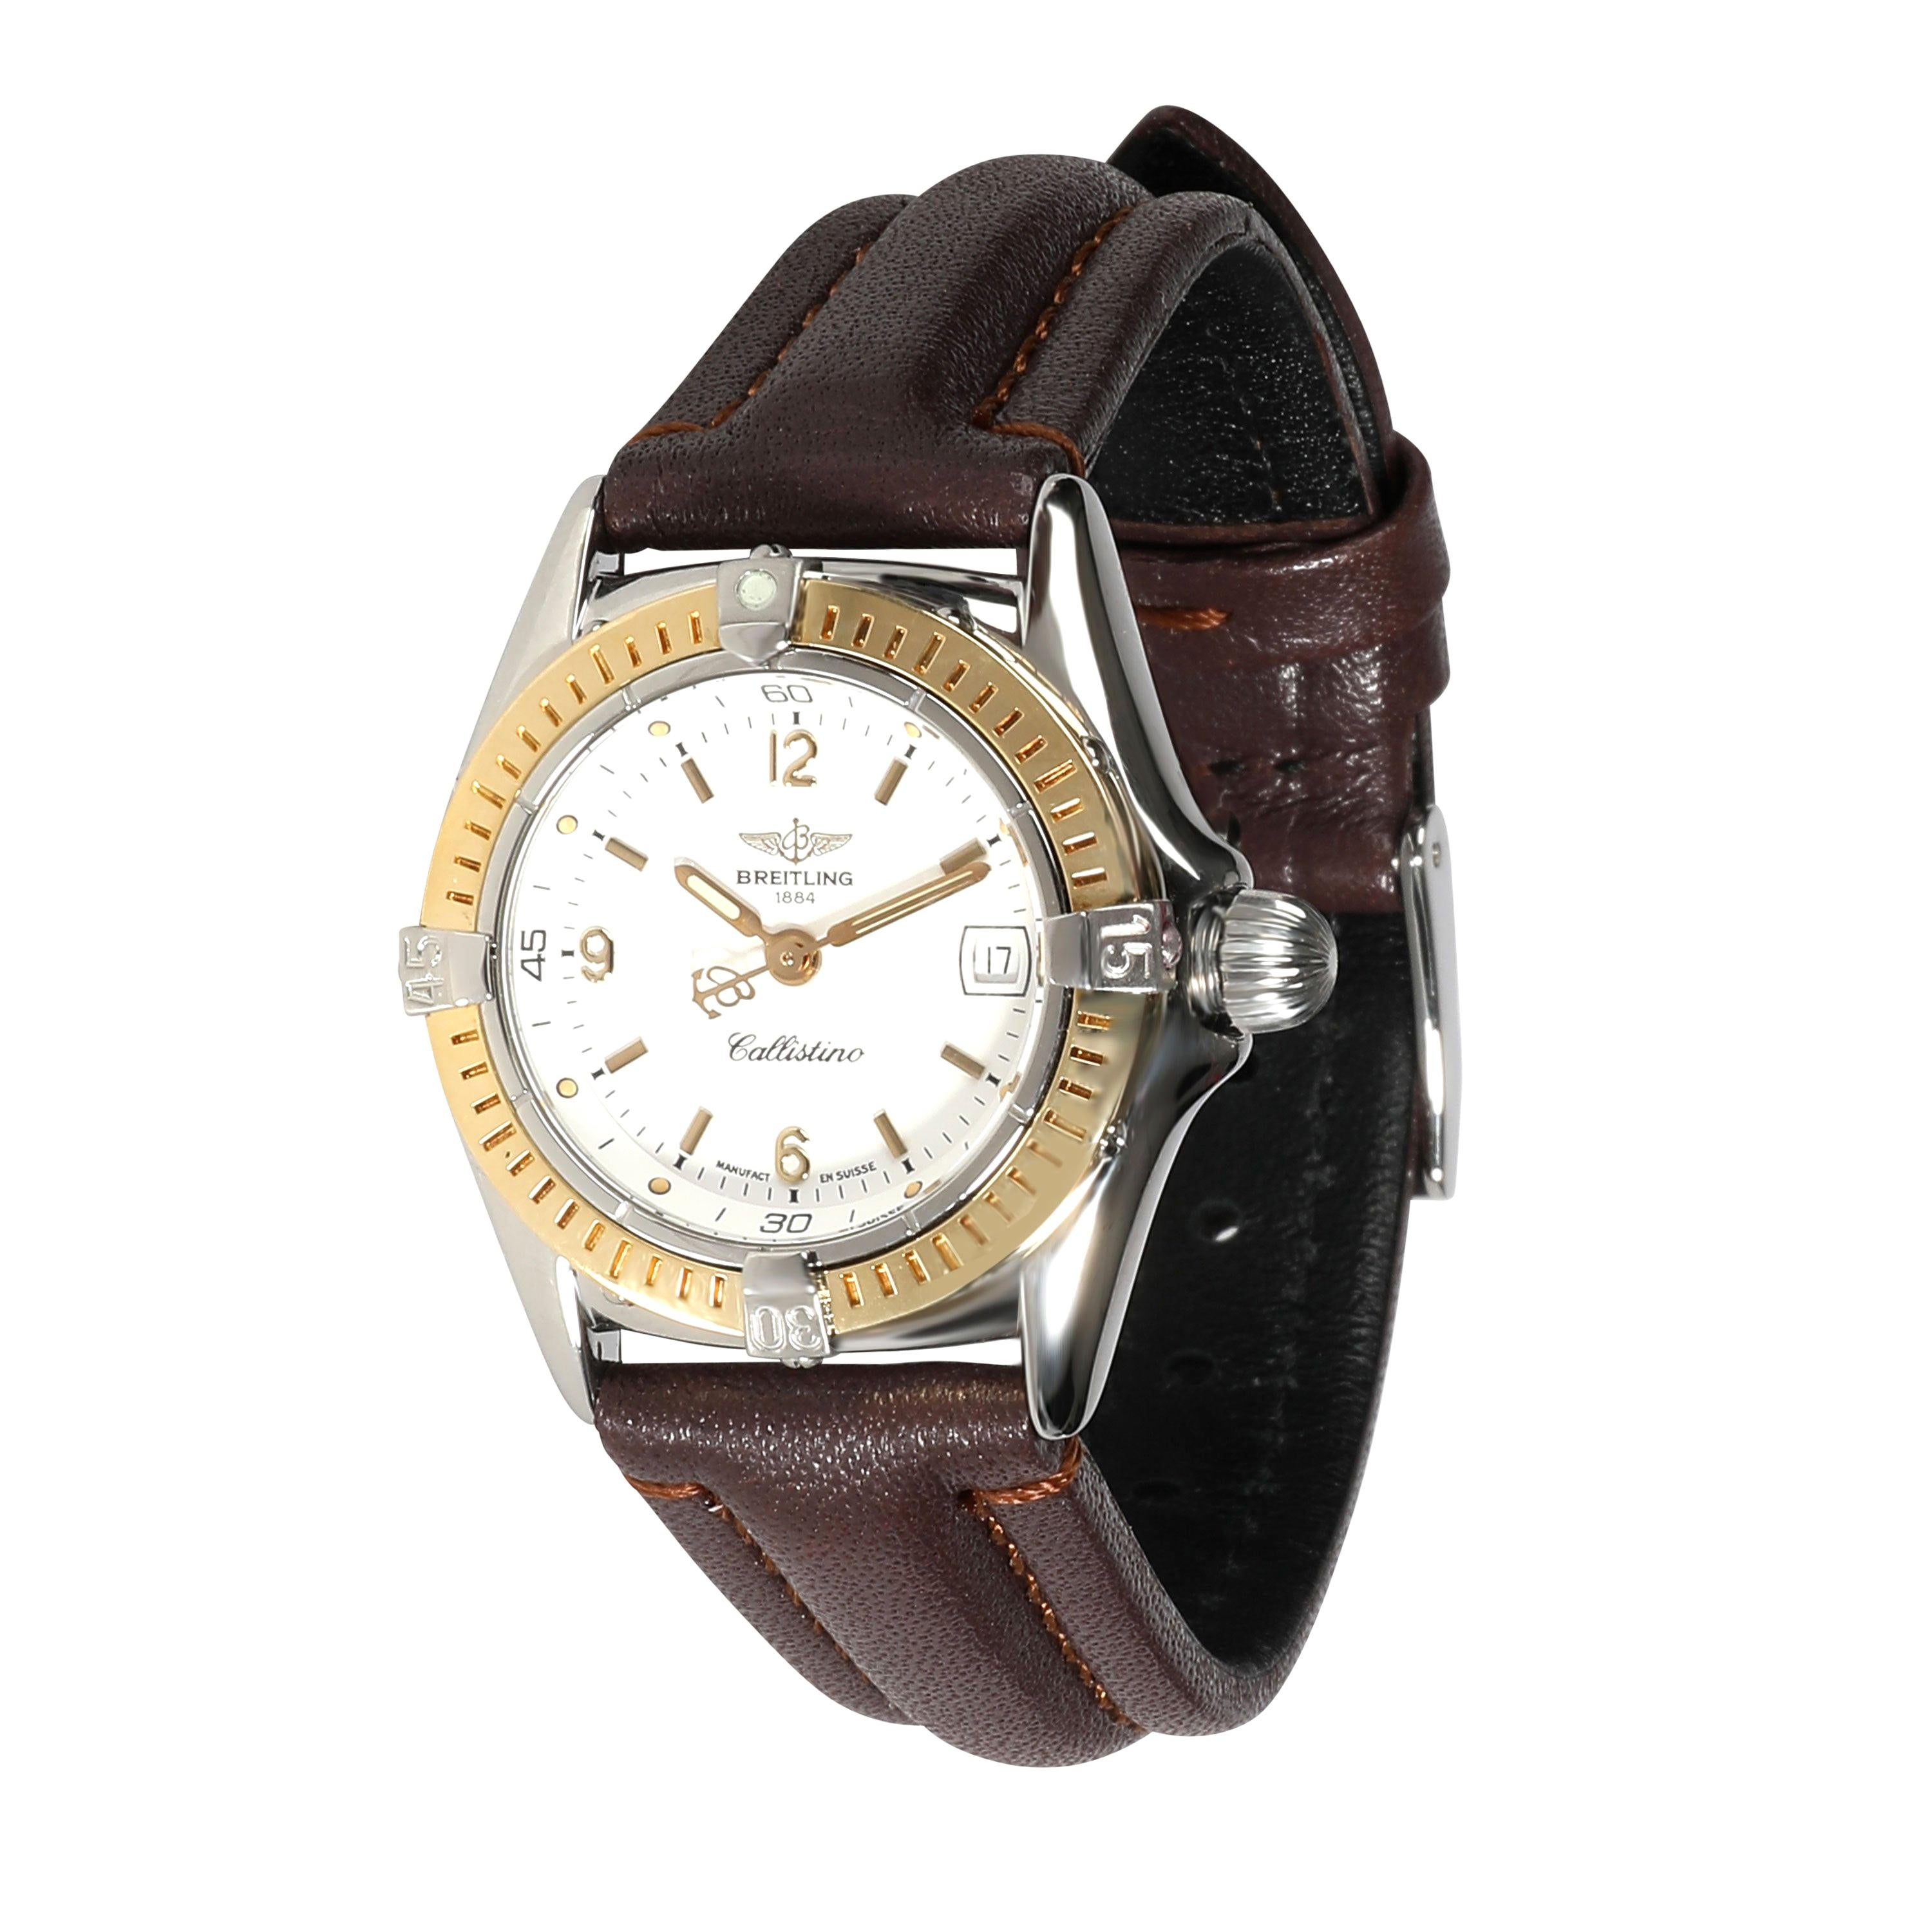 Breitling Callistino D52045 Women's Watch in 18kt Stainless Steel/Yellow Gold